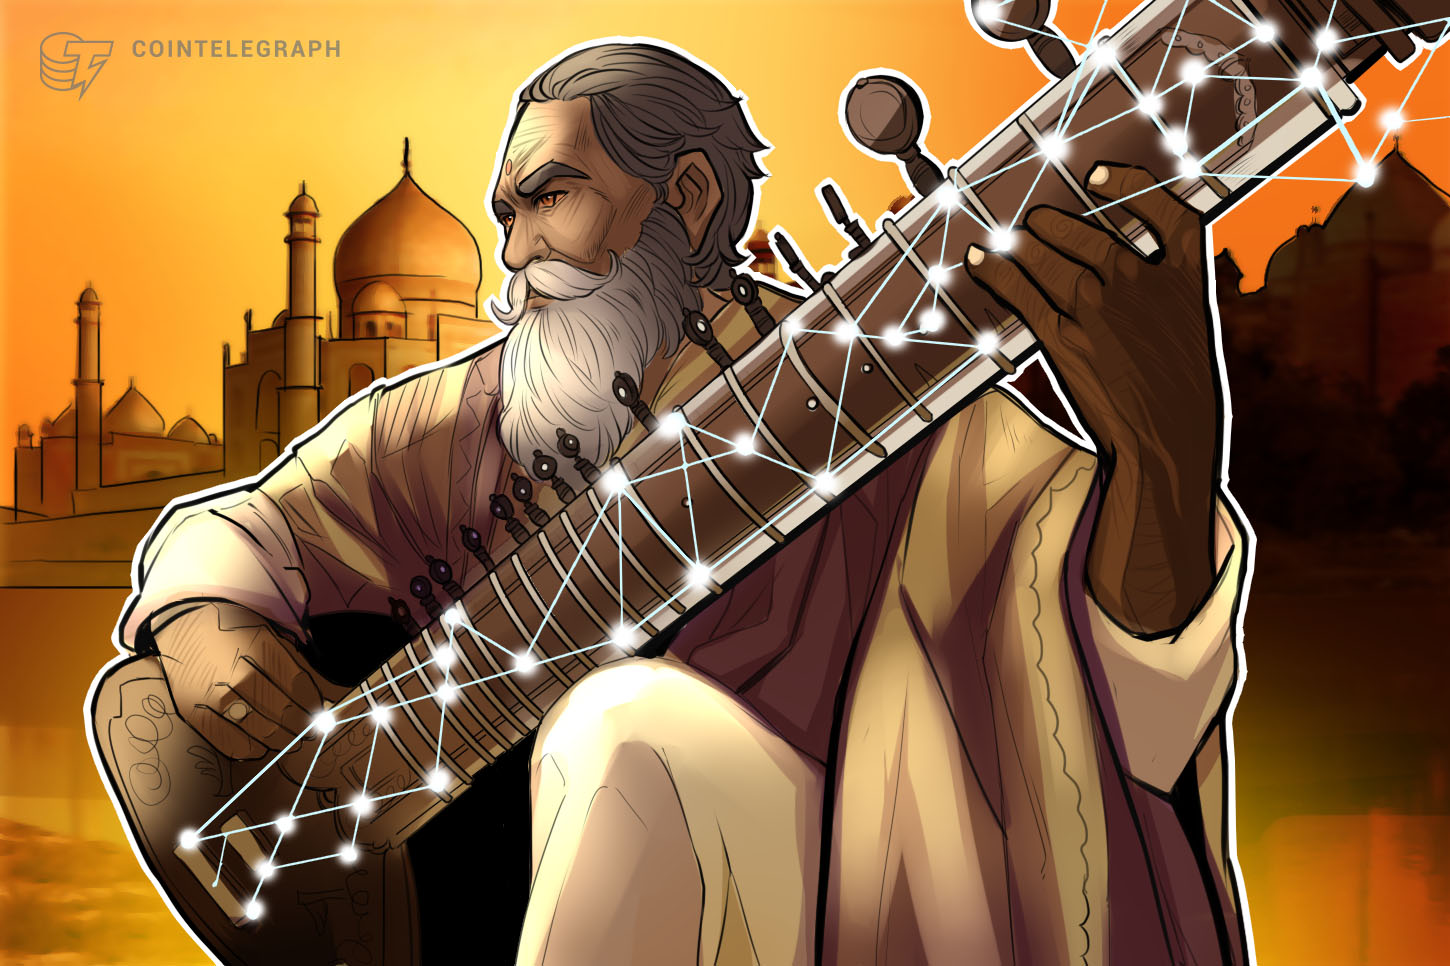 Indian state of Tamil Nadu announces blockchain infrastructure plan